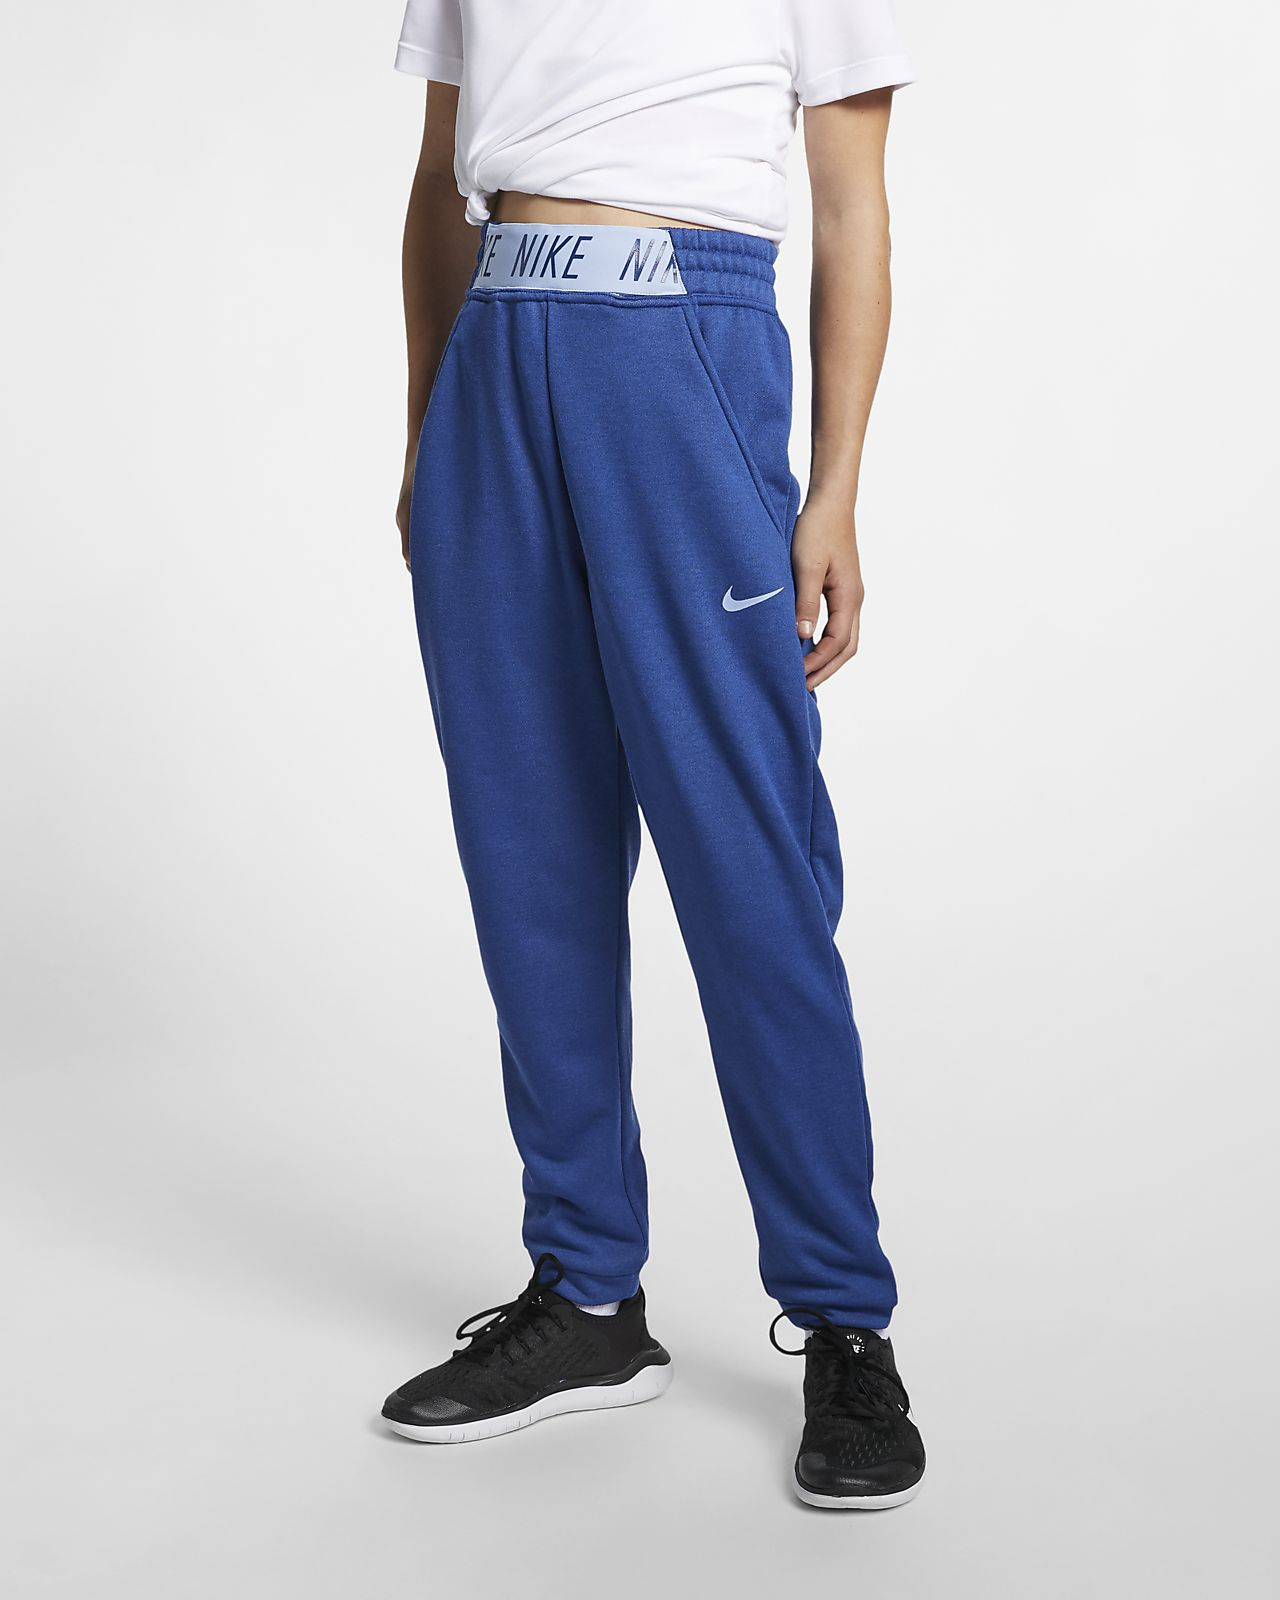 Nike Big Kids' (Girls') Training Pants